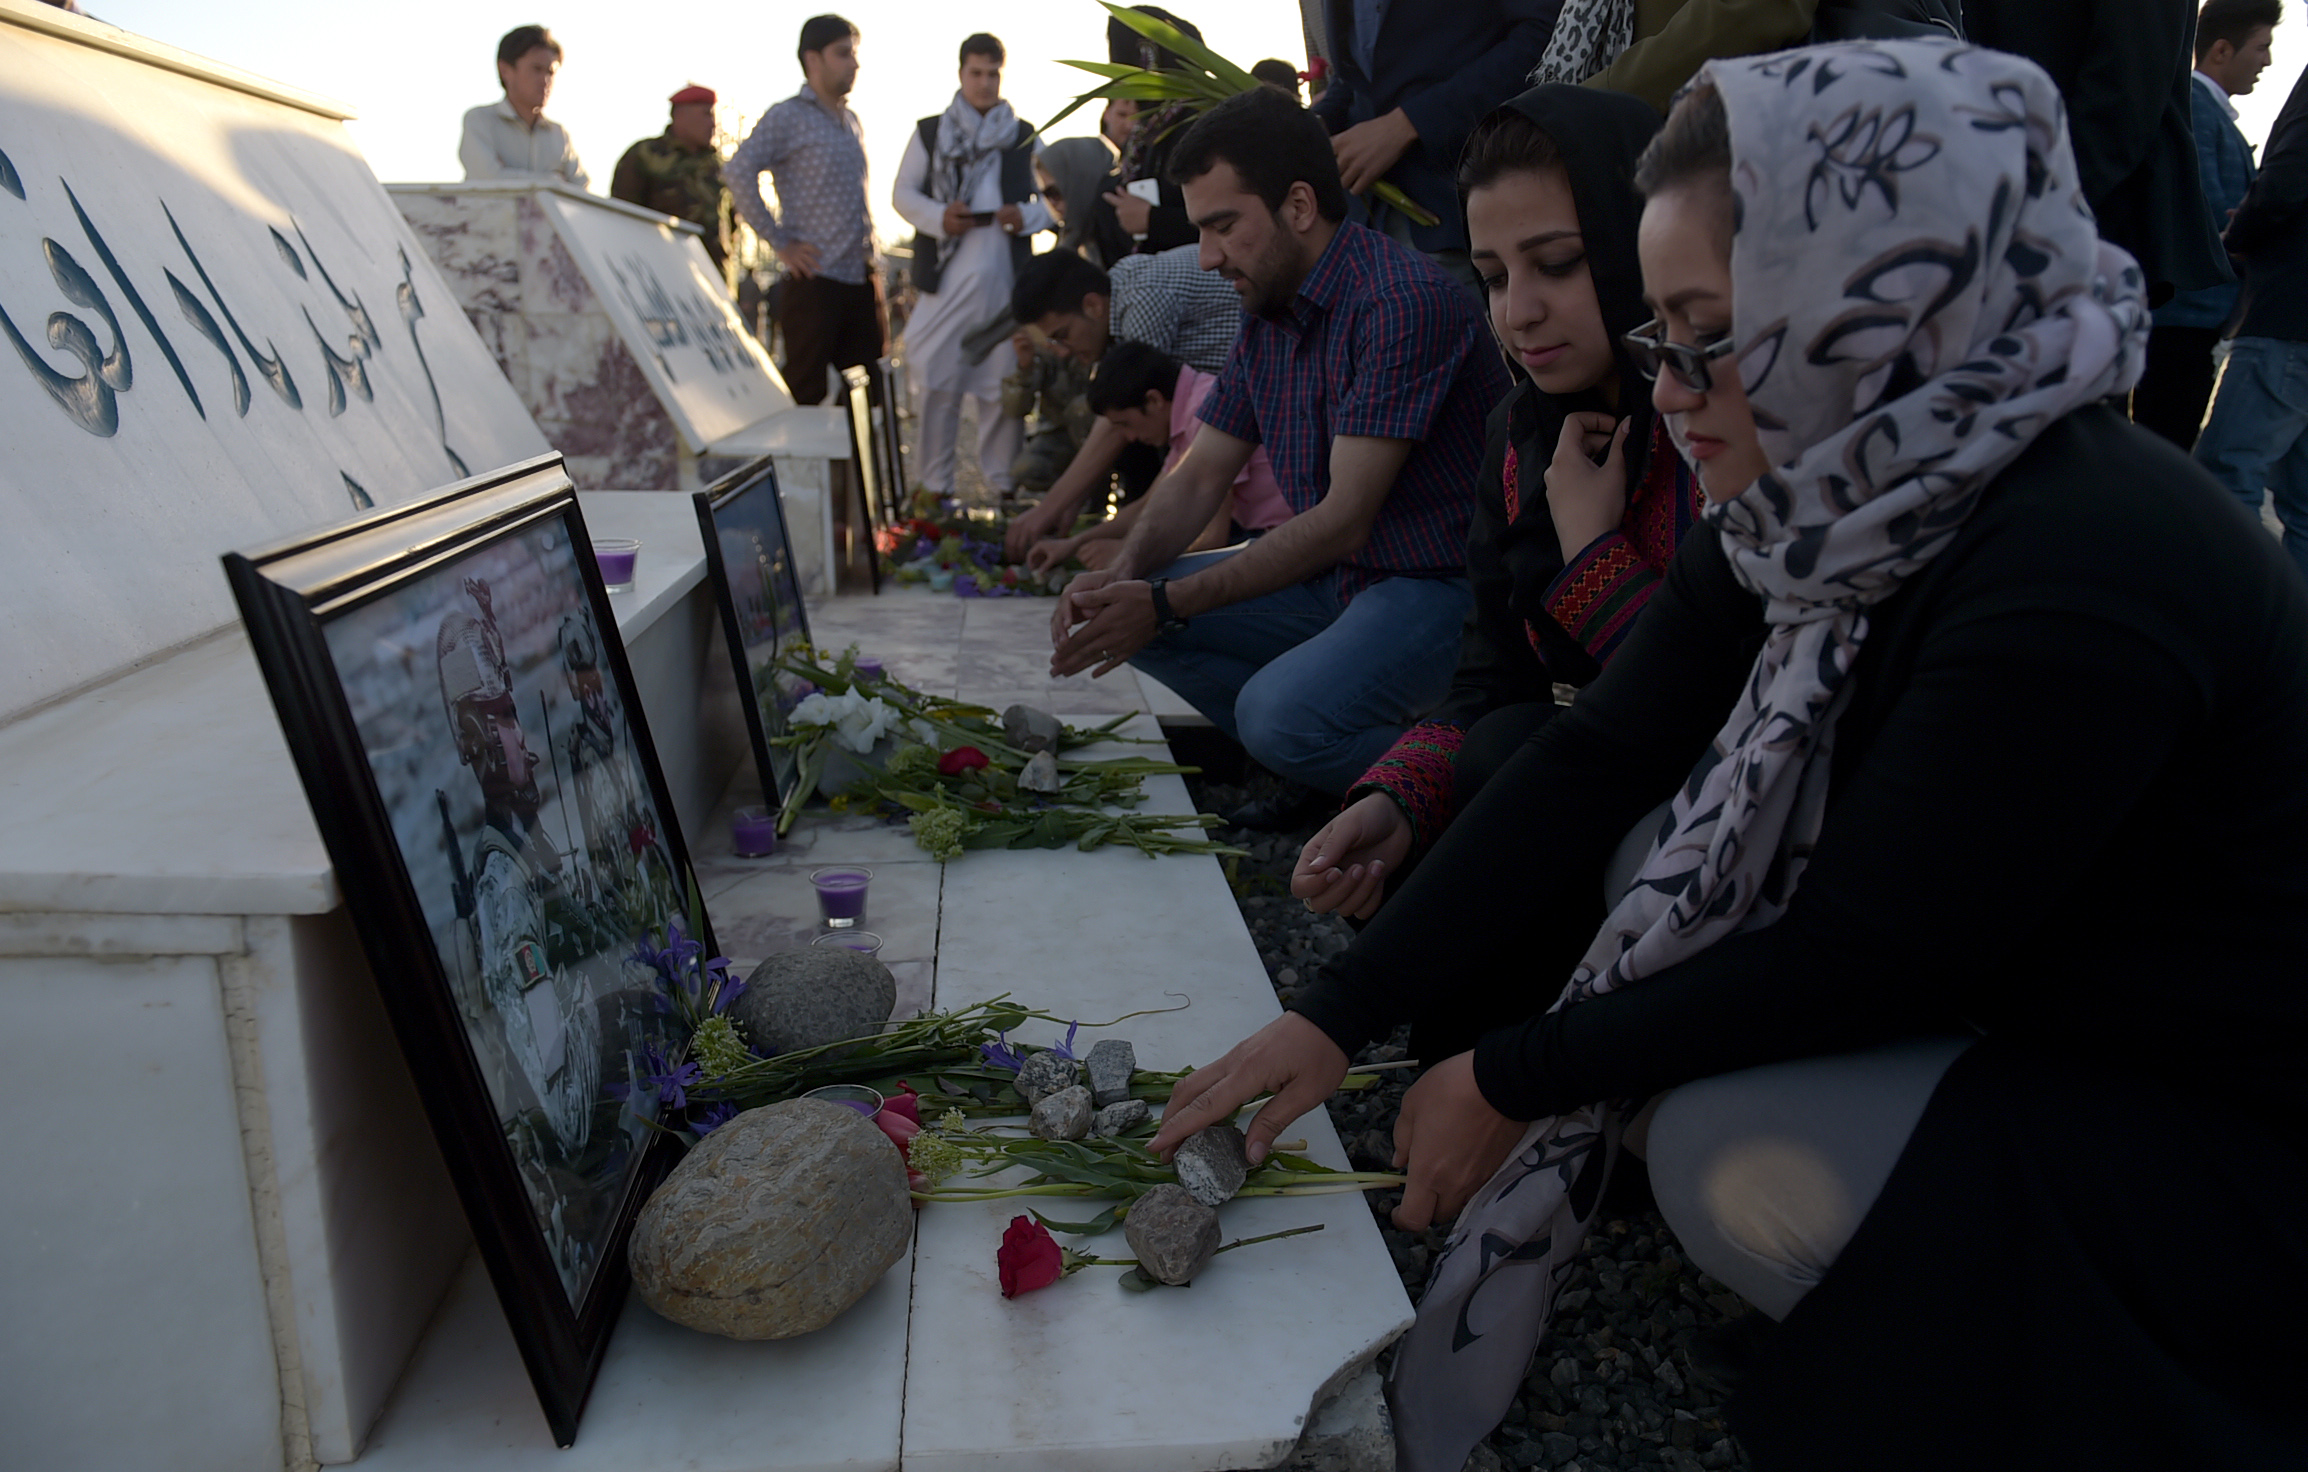 Afghans pay tribute to the victims of a Taliban attack on an army base on the Wazir Akbar Khan hilltop in Kabul on April 23, 2017.